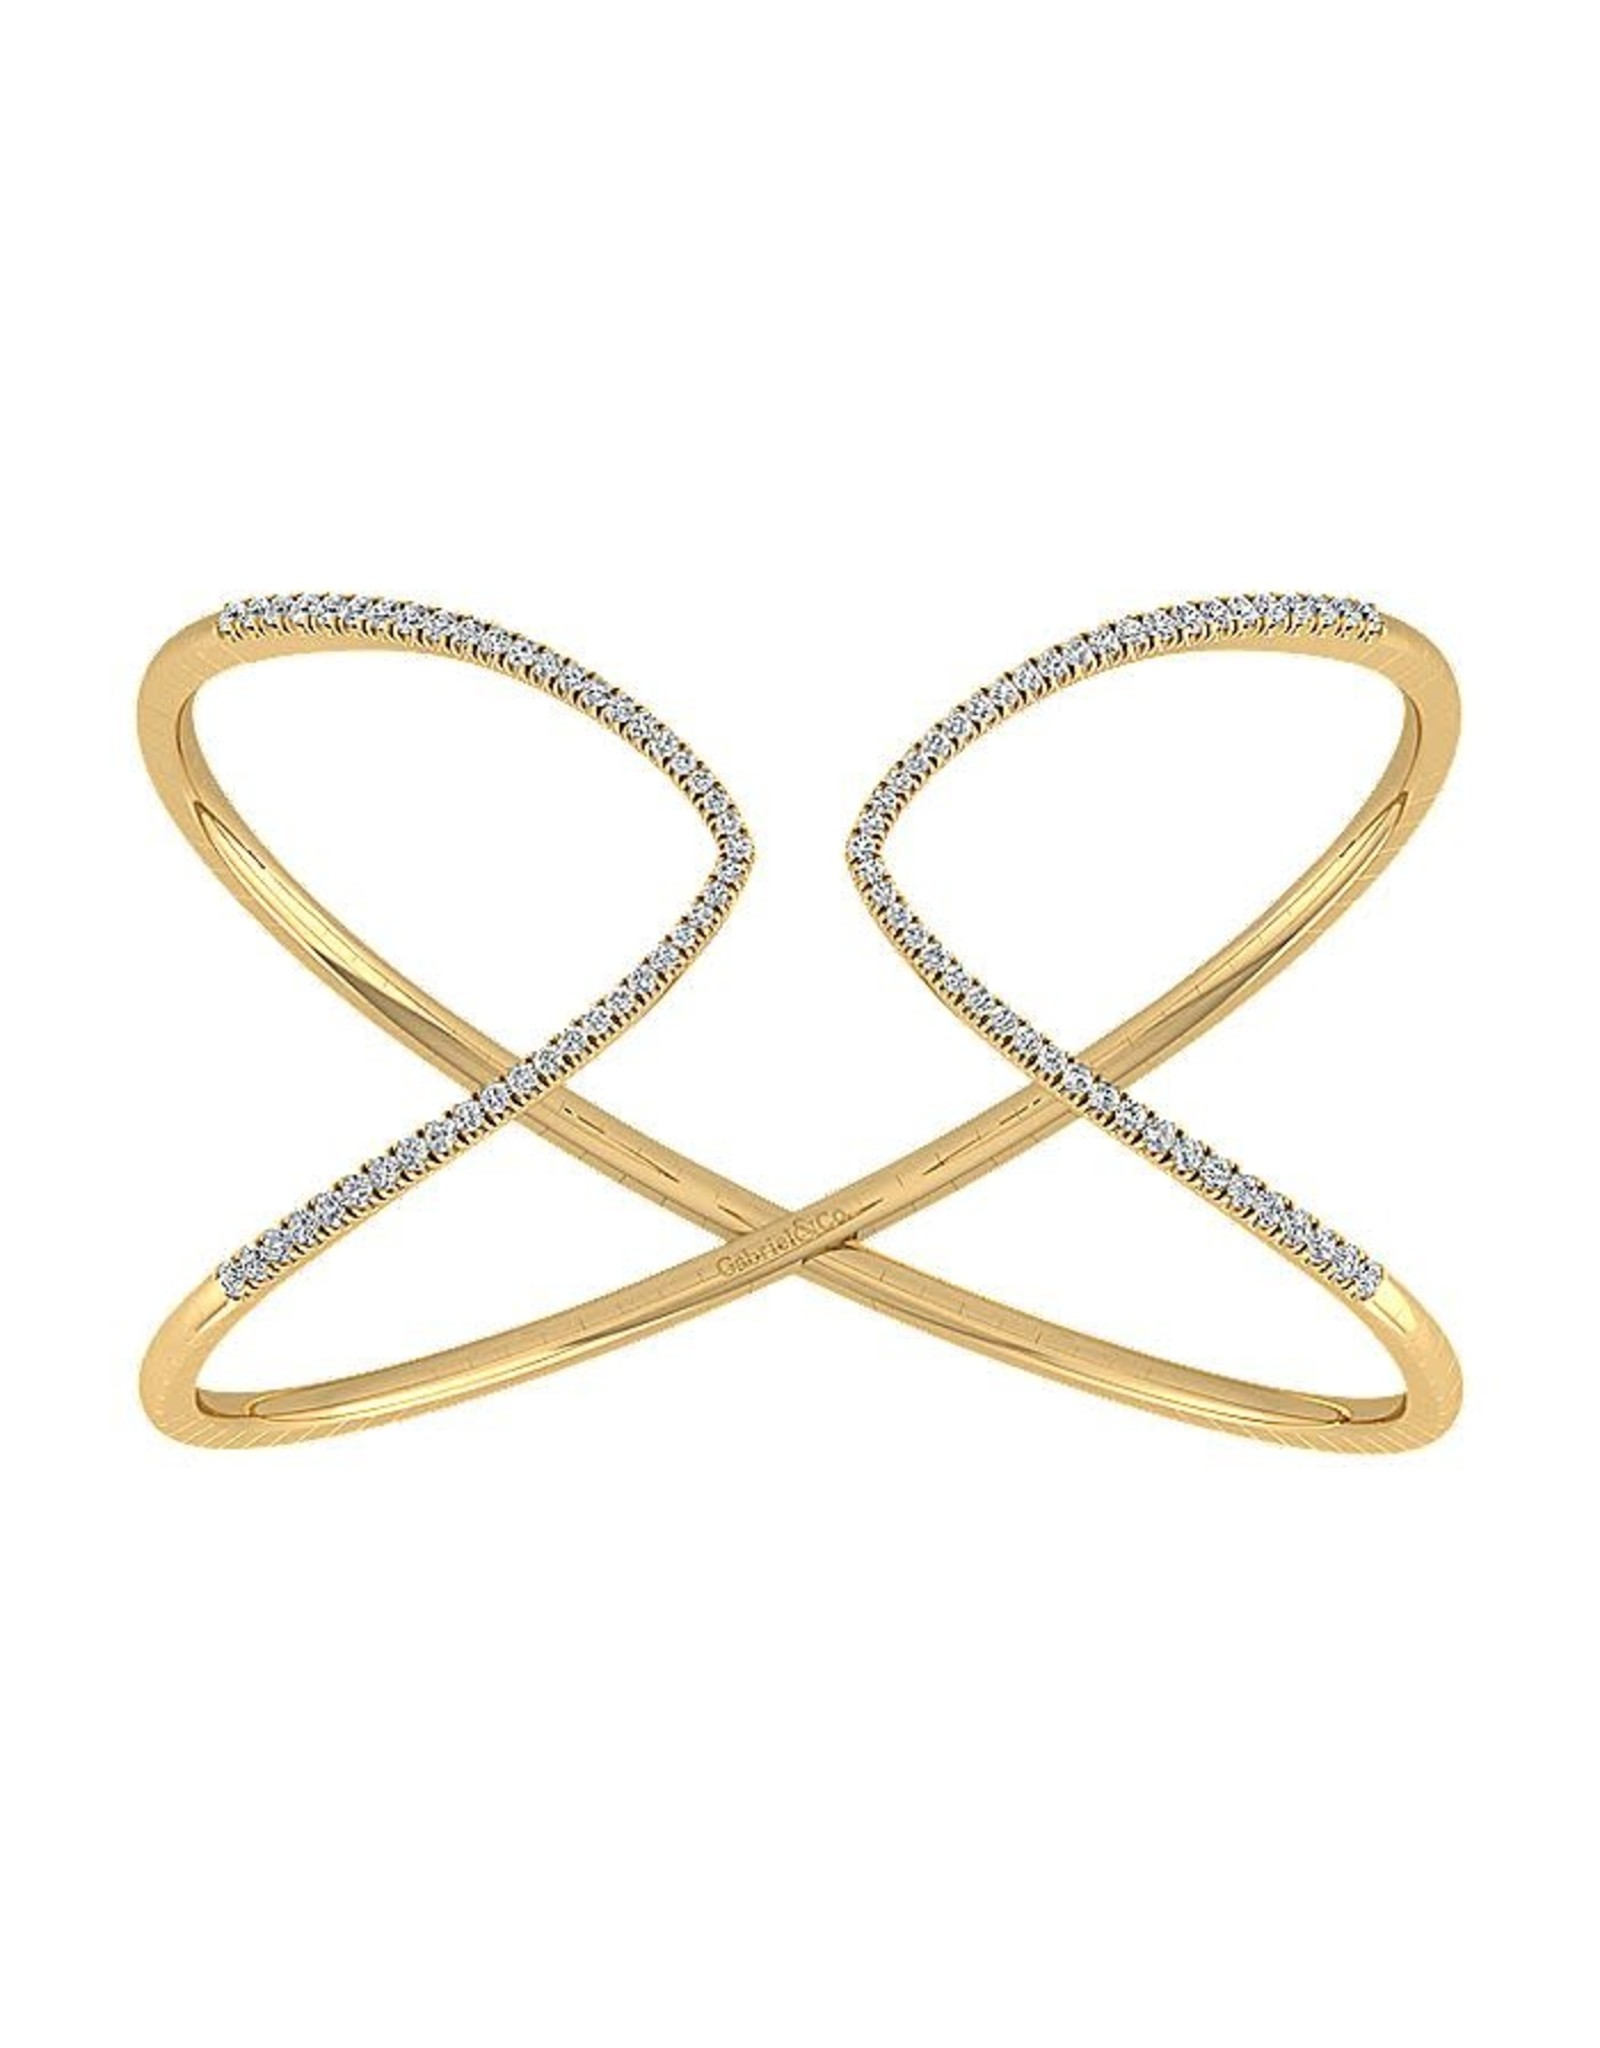 14K Yellow Gold Flexible Diamond Cuff Bracelet, D: 1.22ct